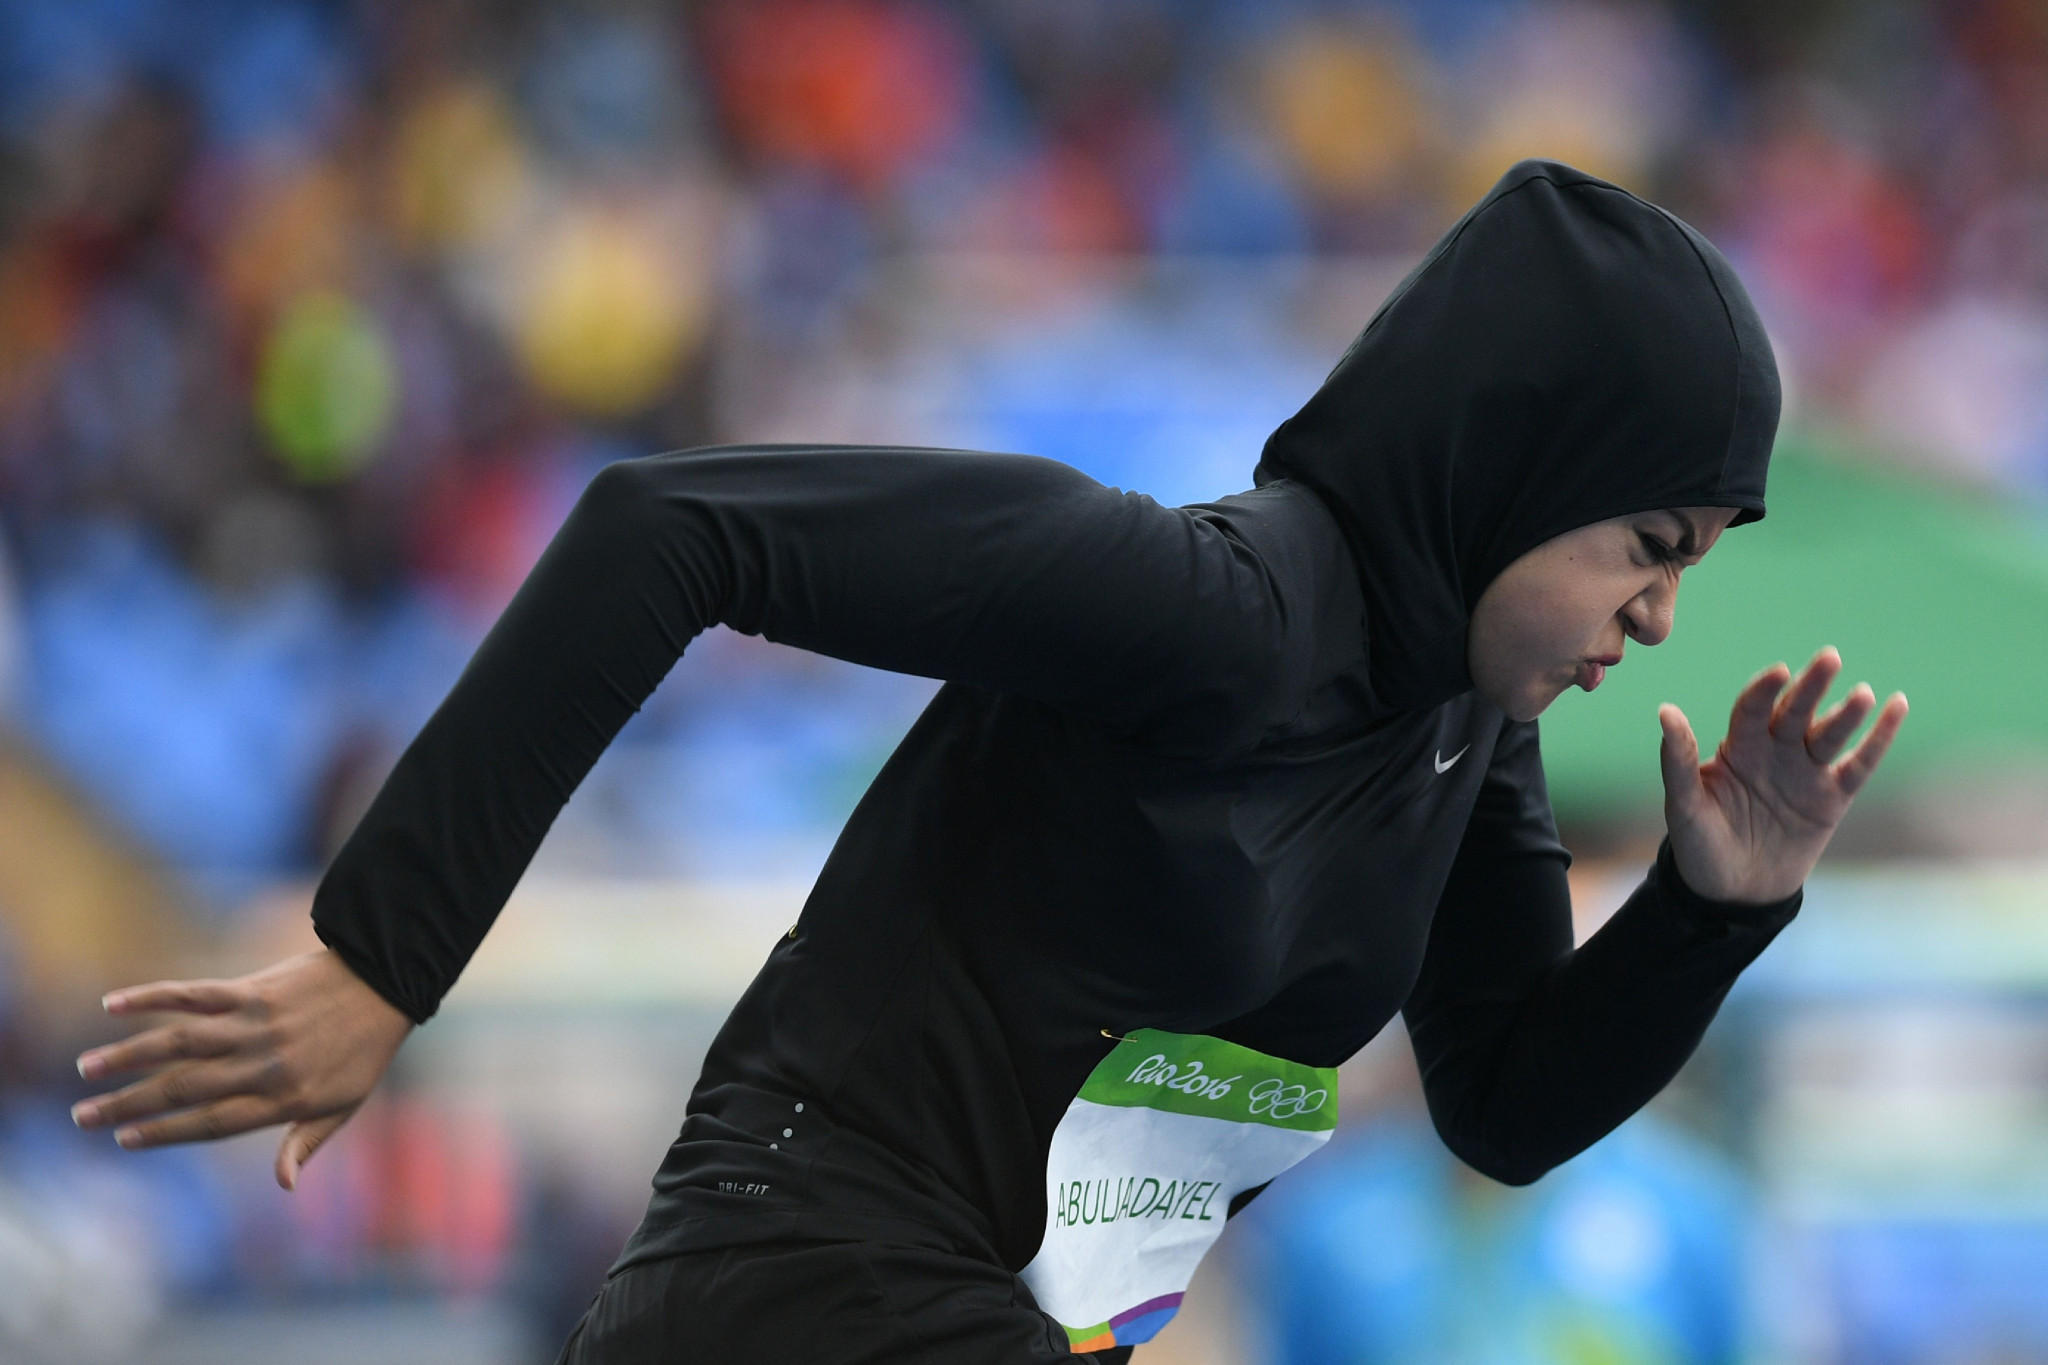 The programme hopes to get more Saudi students into sport and, eventually, competing at the Olympic Games ©Getty Images